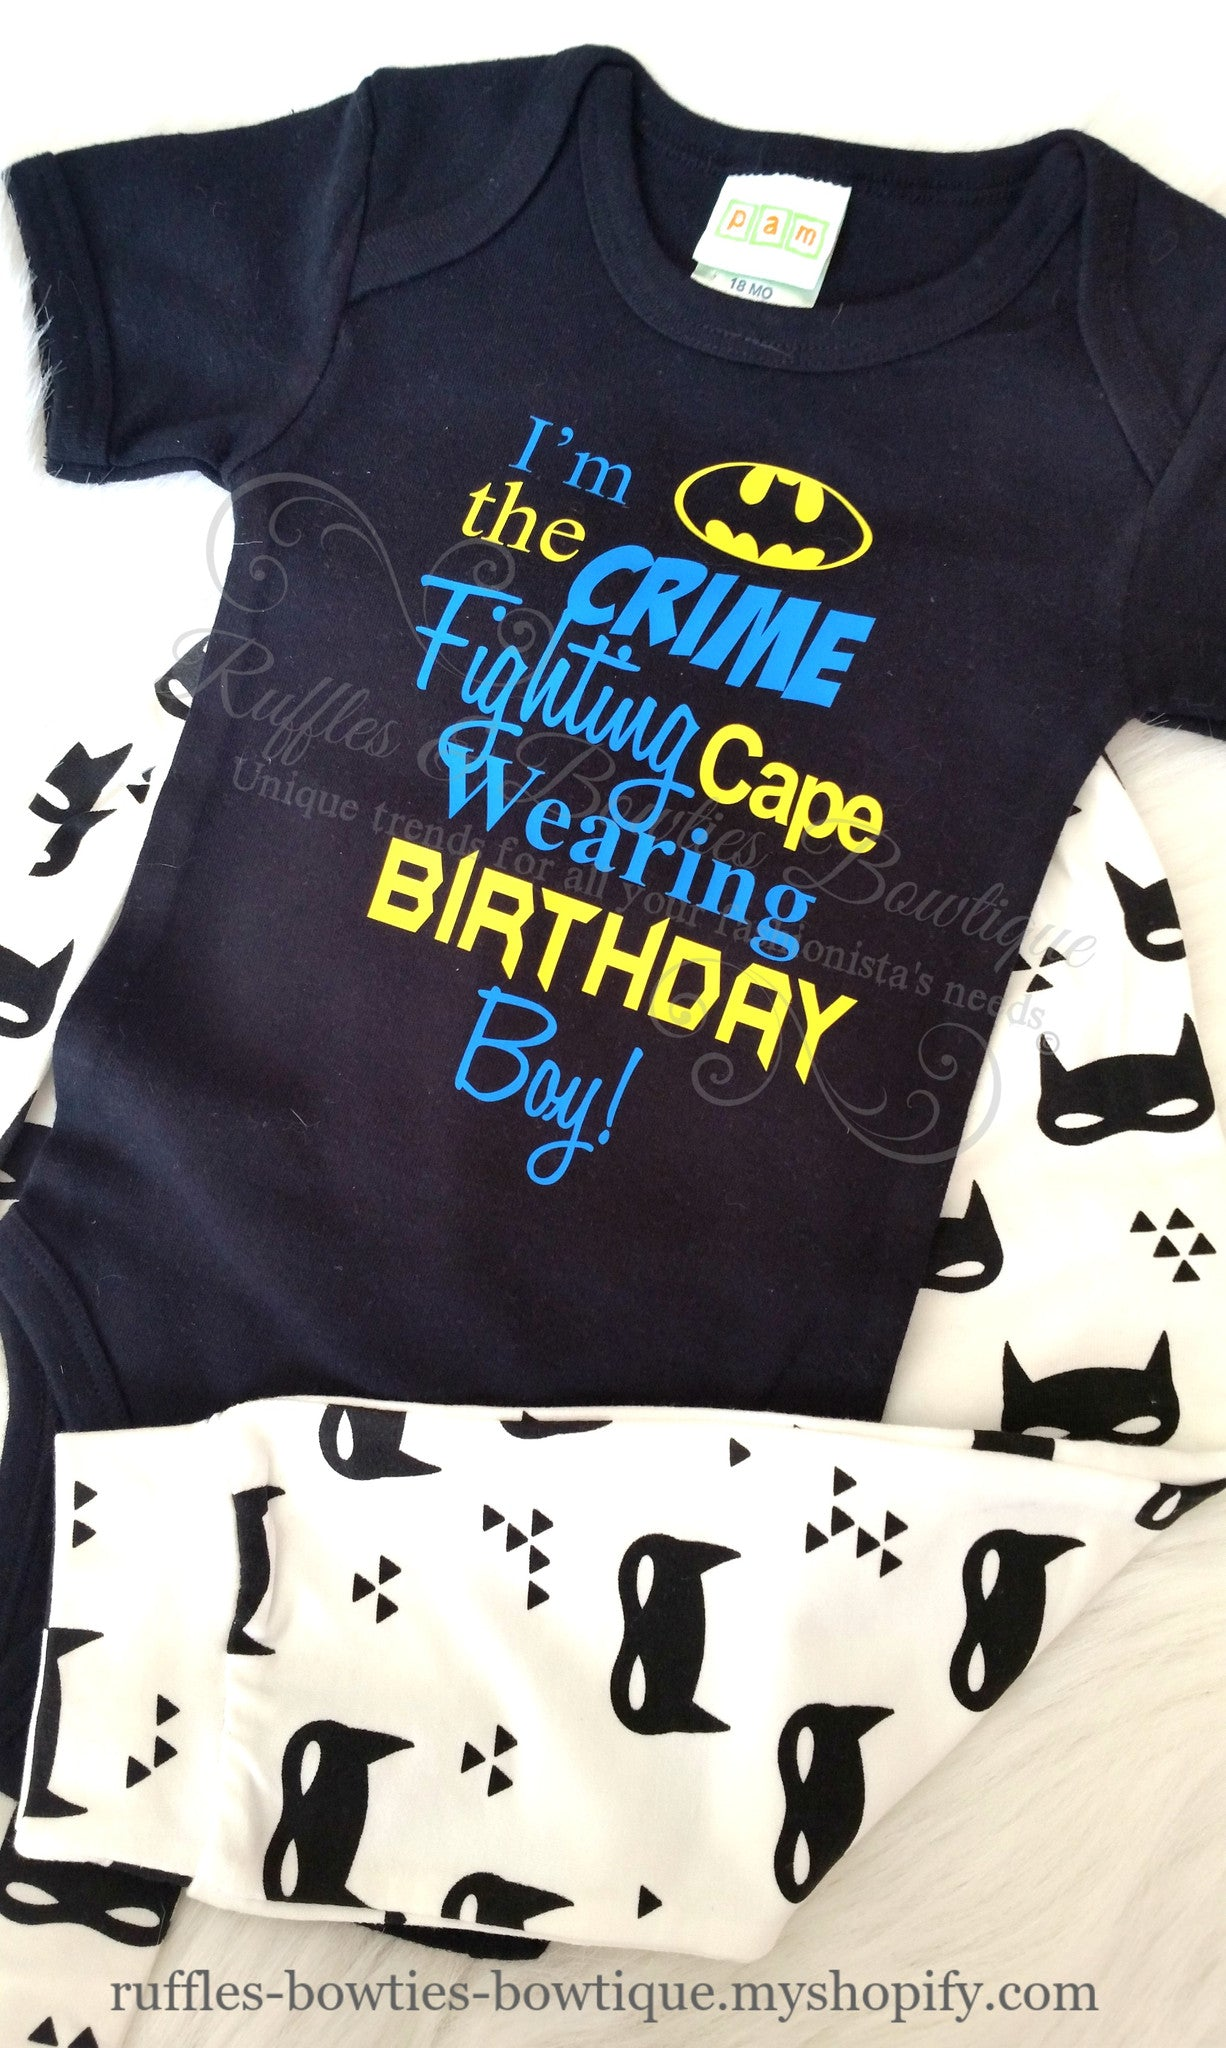 bat man birthday shirt im a the crime fighting cape wearing birthday boy super